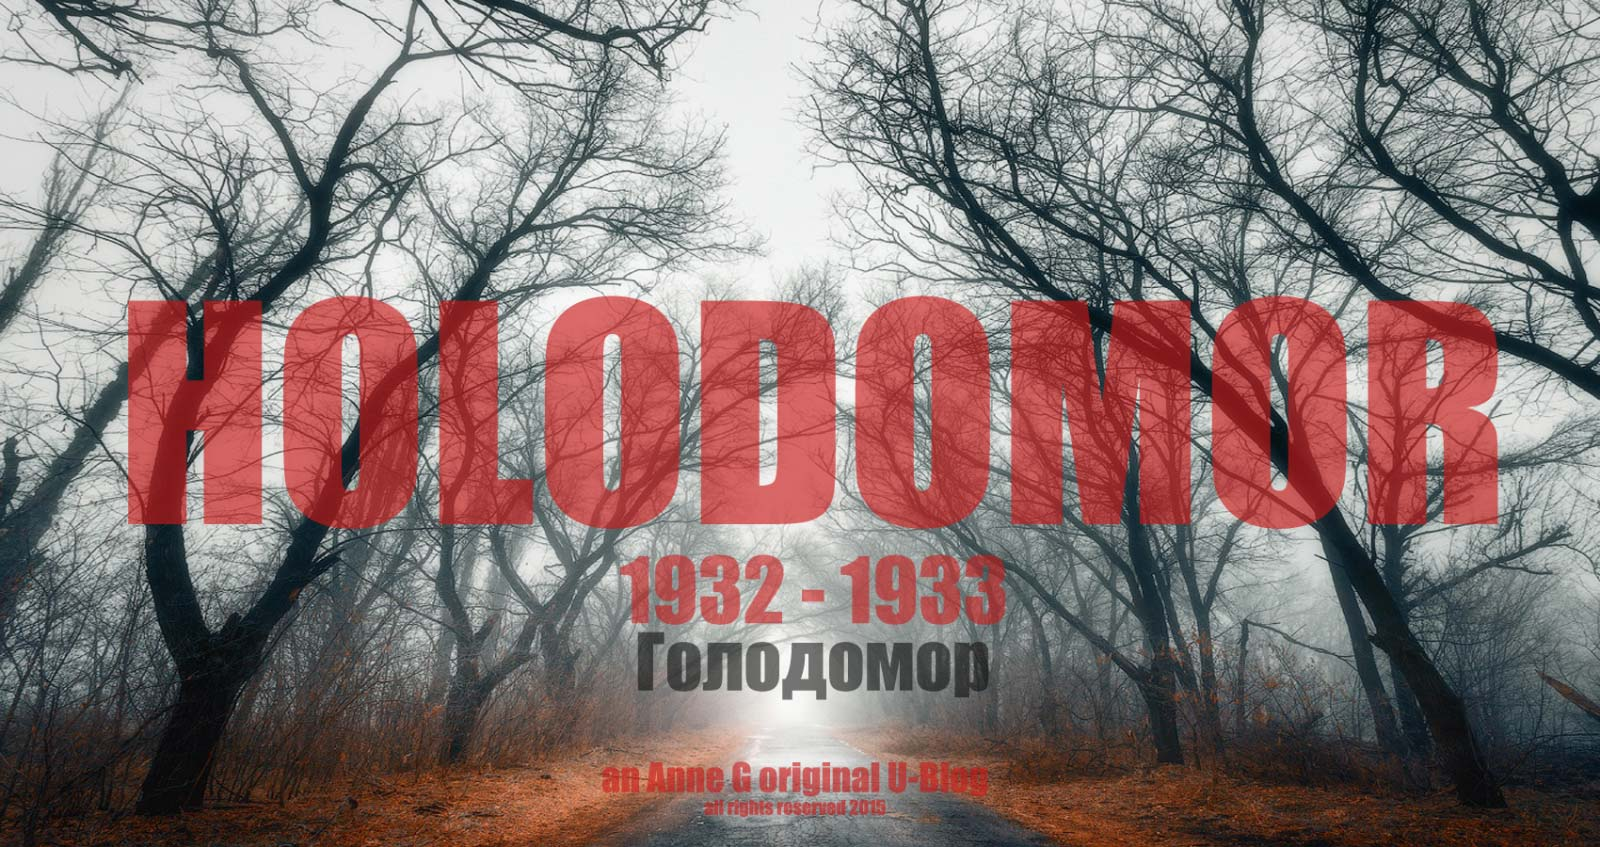 spillwords.com Holodomor by Anne G